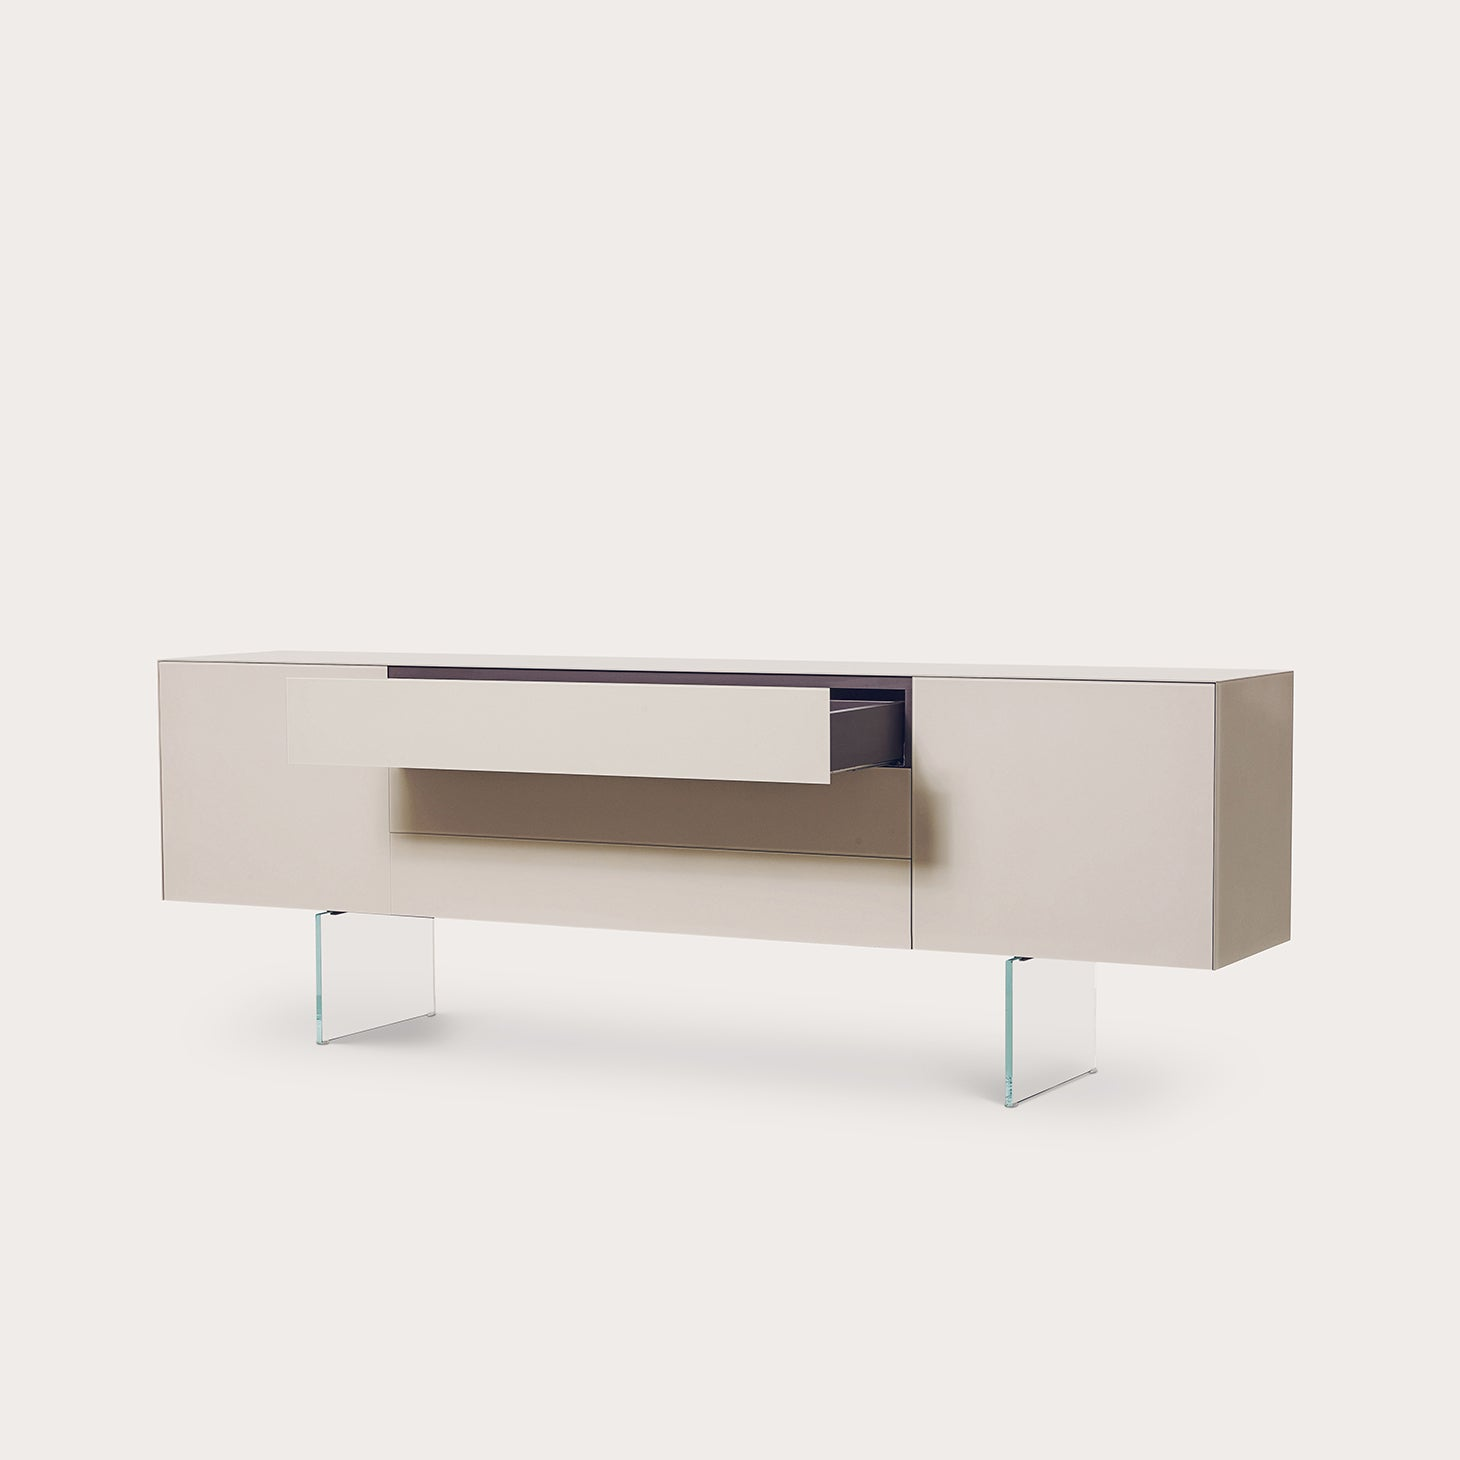 Magic Box Sideboard Storage Piero Lissoni Designer Furniture Sku: 288-220-10028